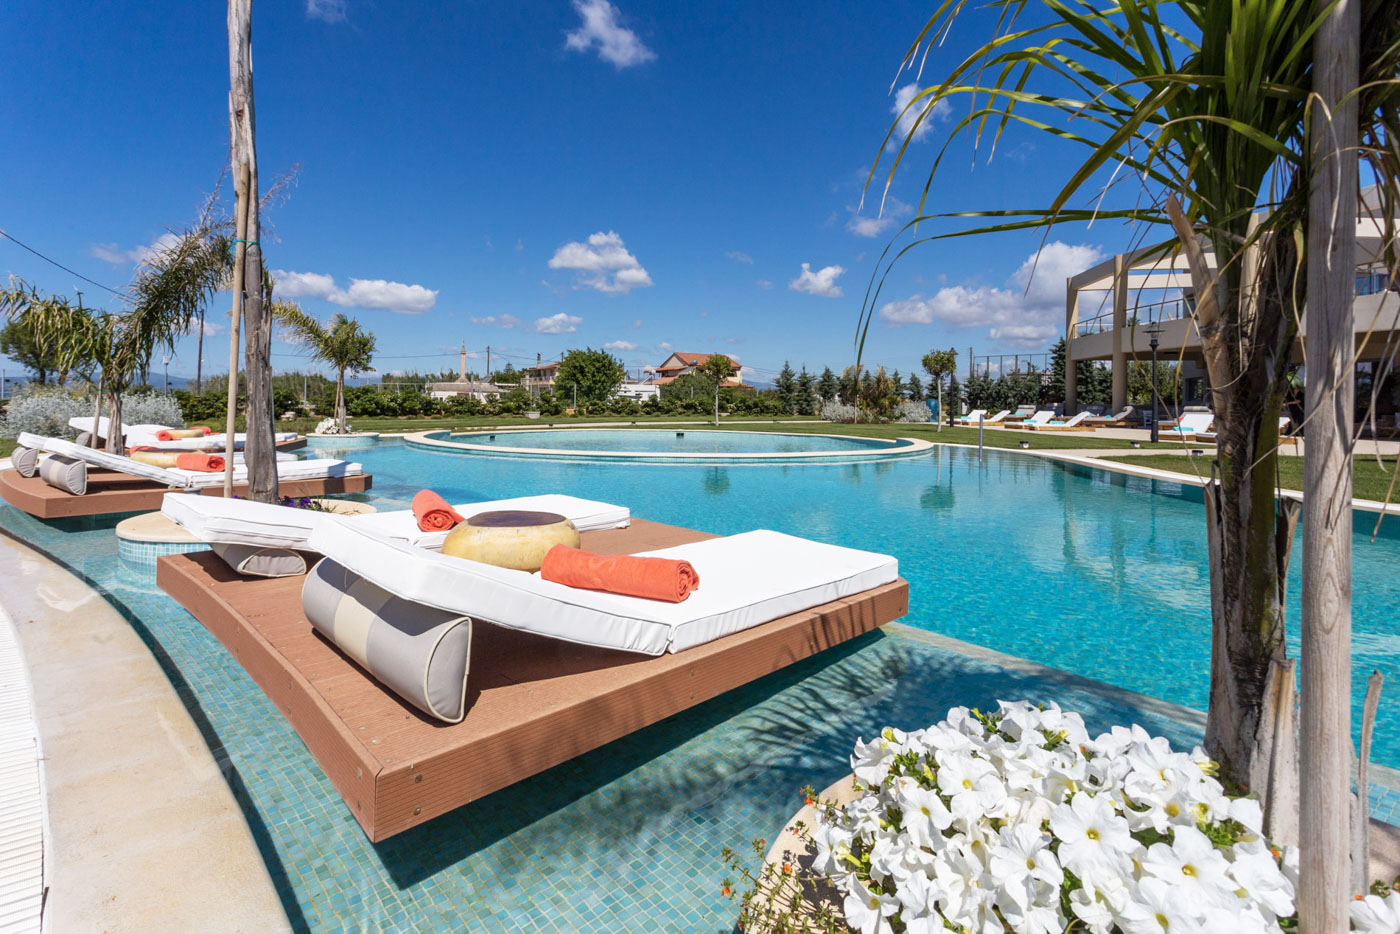 Elysian luxury hotel and spa Kalamata outside pool